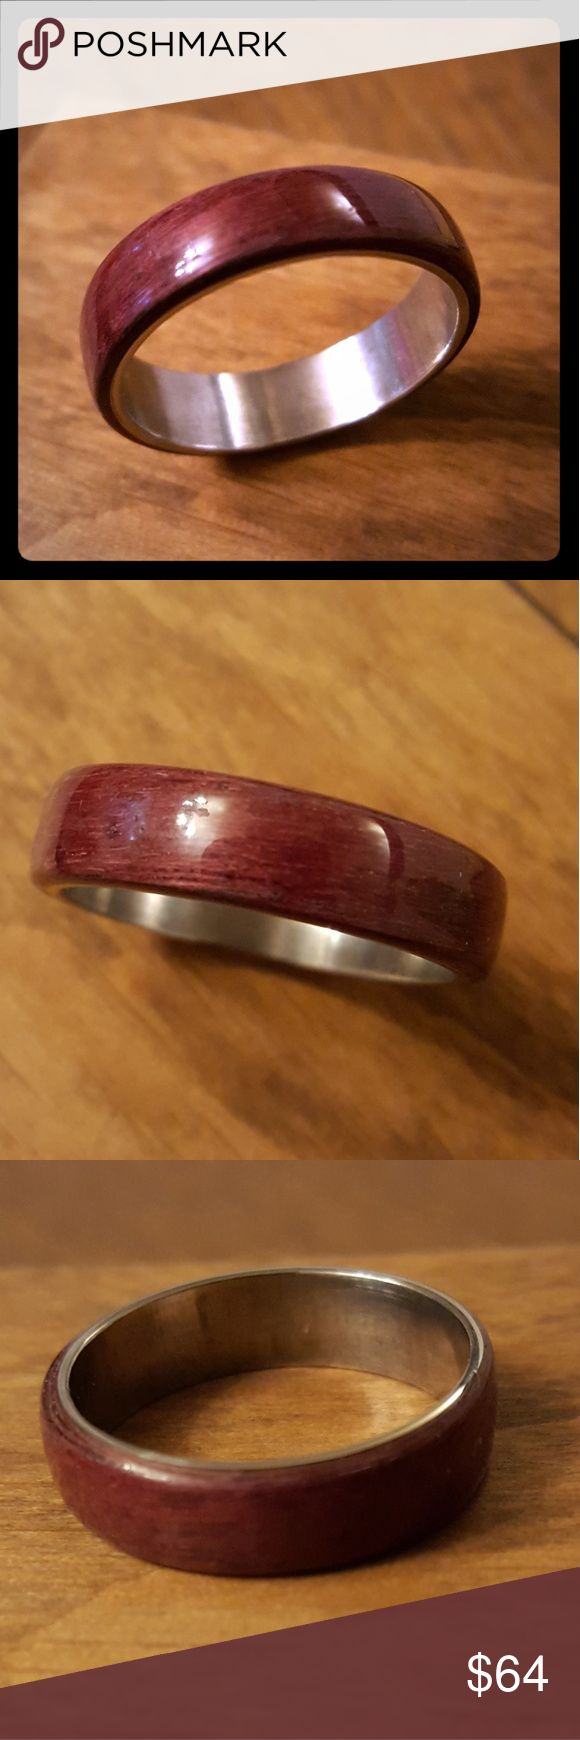 Purpleheart Bentwood Ring with SS core This bentwood ring is made from Purpleheart with a stainless steel core.  Please choose from US size 6 through US size 14 and width from 4mm, 6mm or 8mm  My rings are handcrafted one at a time from the Stainless Steel Band and the Bentwood process to place the wood inlay around the band. I then seal it with several layers of water resistant finish and polish to a deep shine.  This SS is cut from a ring blank and does contain an inner seam although you…